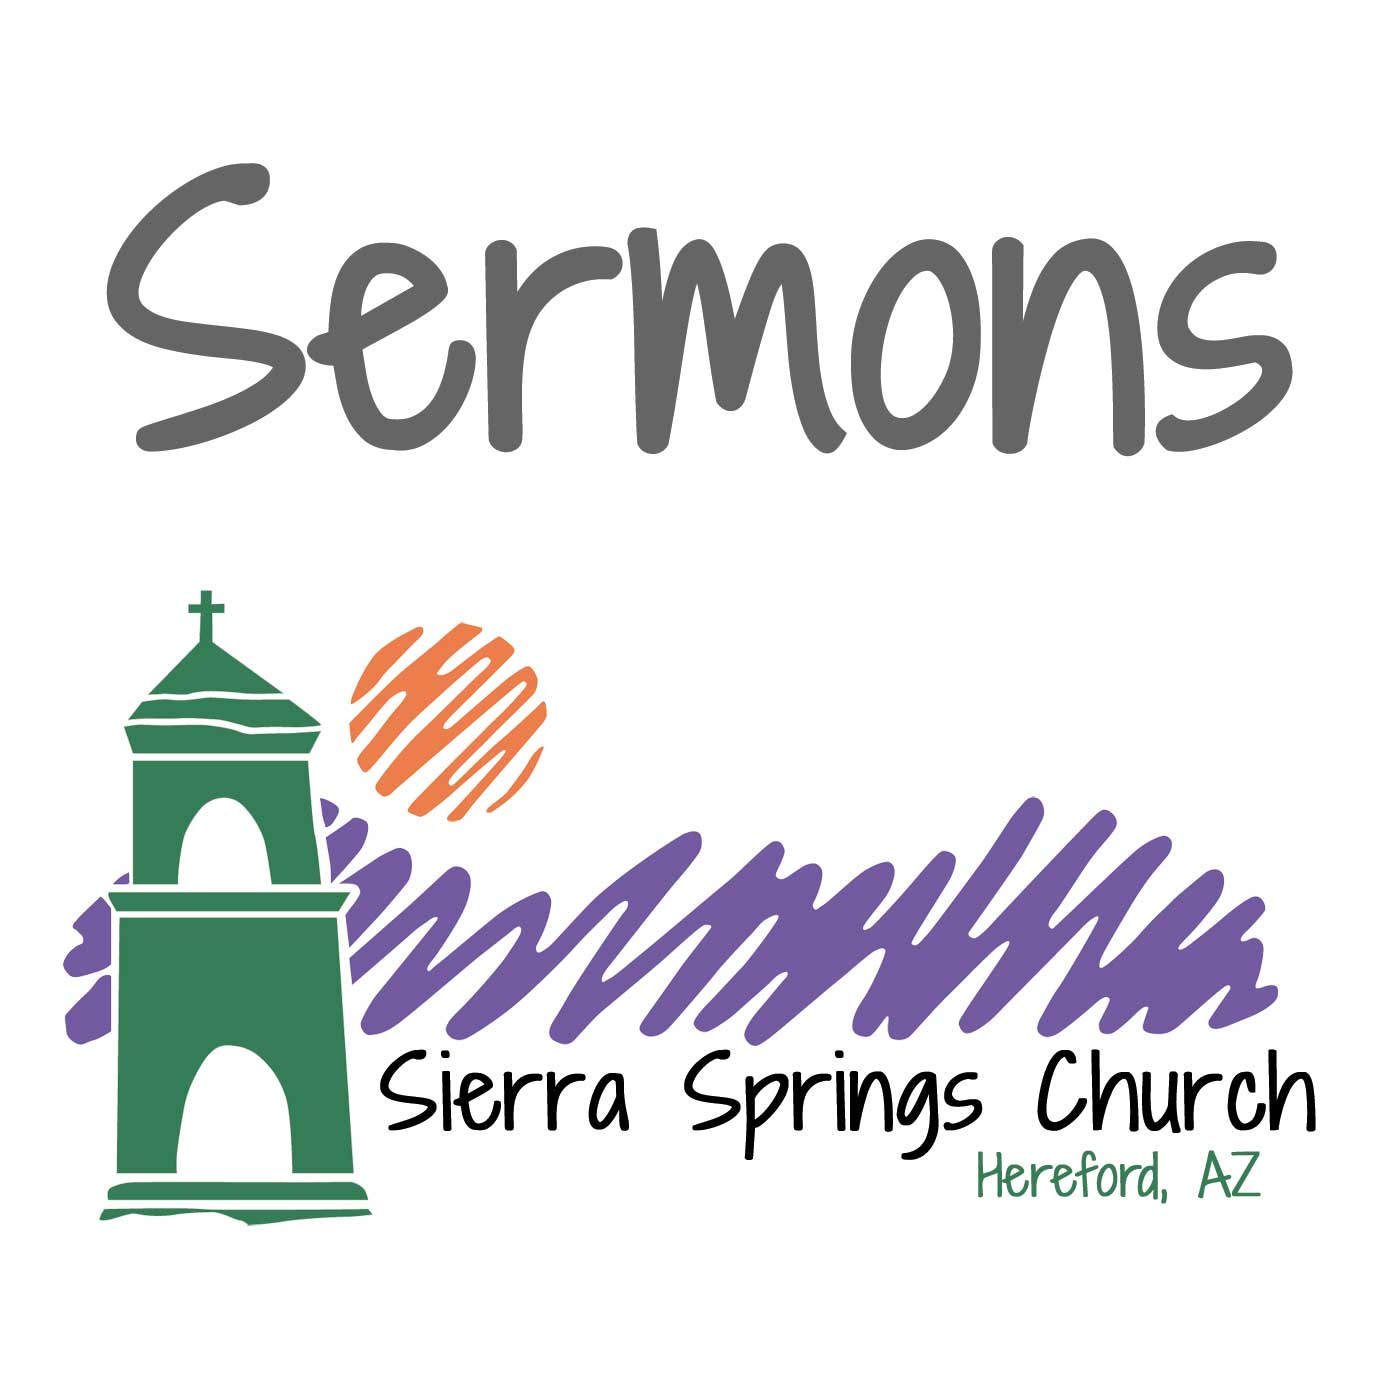 Sierra Springs Church Sermons